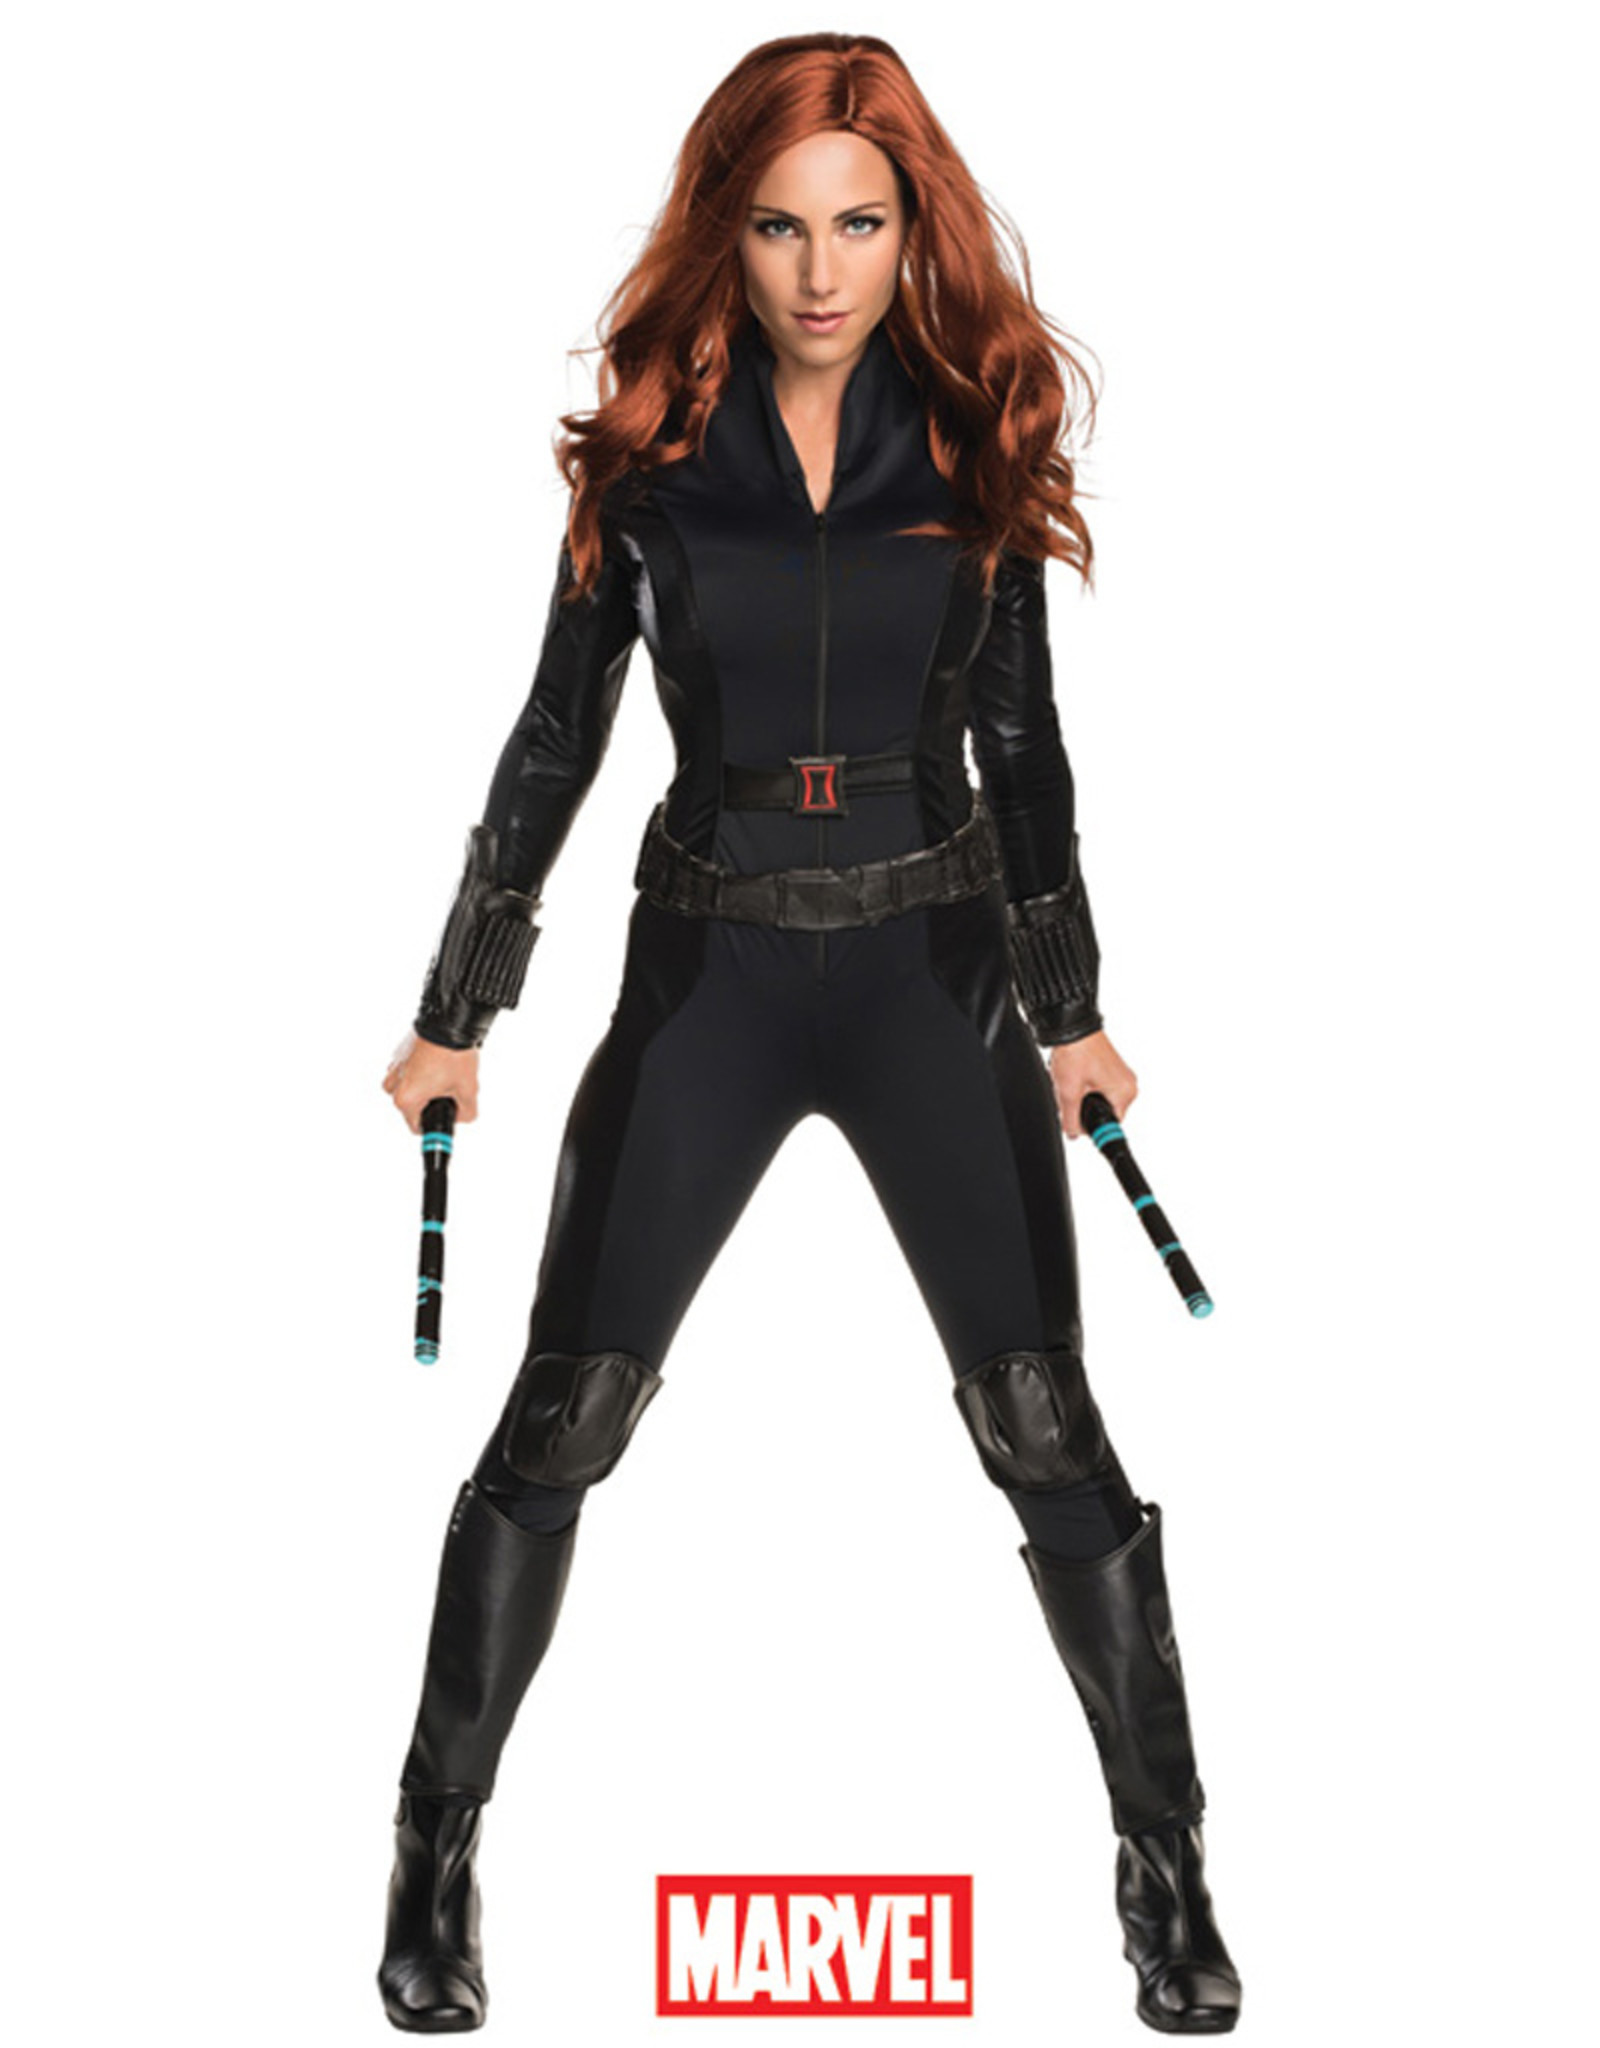 Black Widow - Civil War Costume - Women's